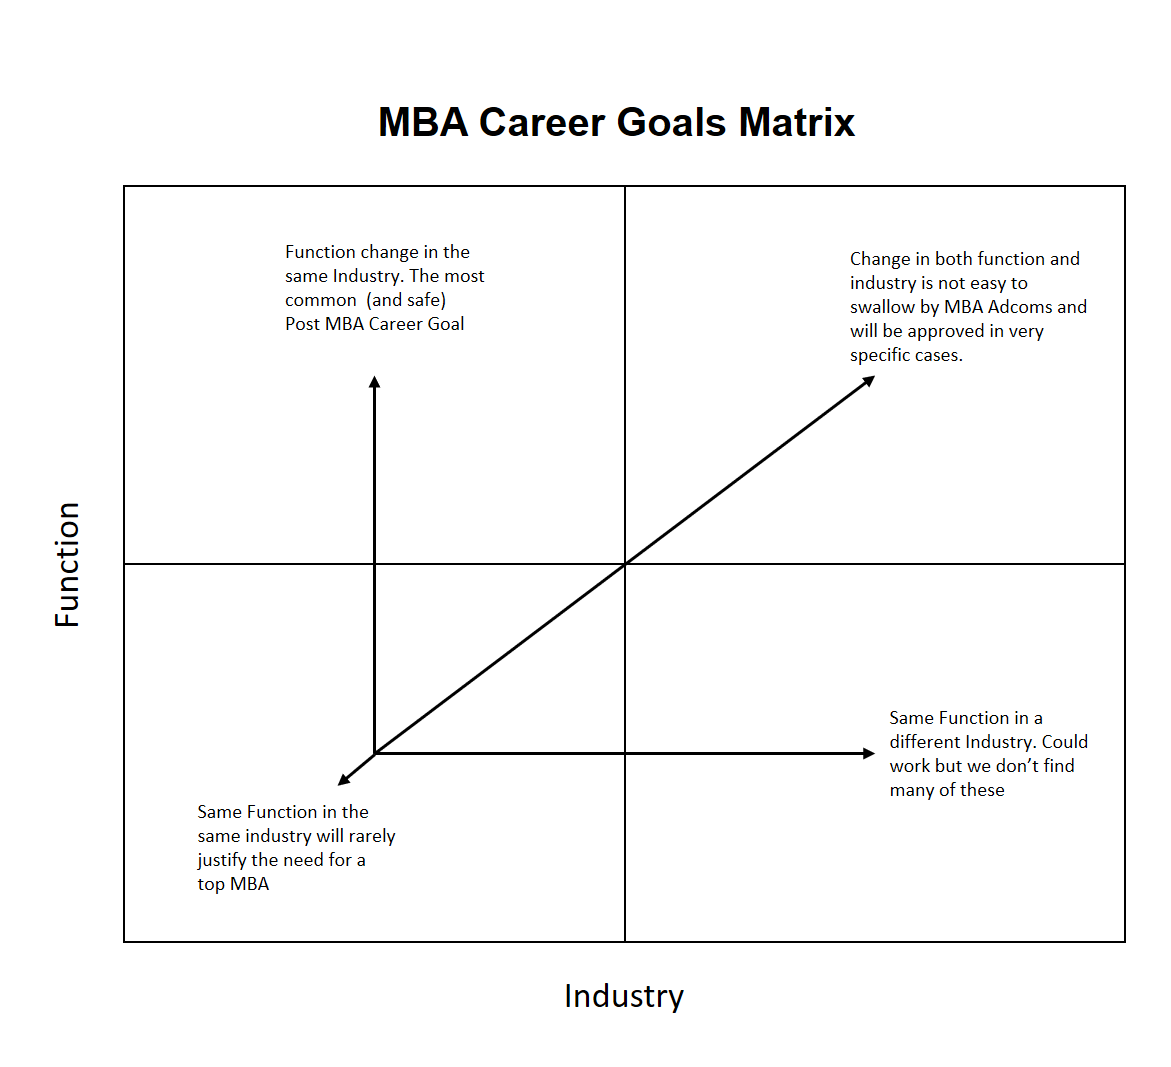 georgetown mba essays analysis Craft a response that explains how these experiences led you to pursue an mba  our goal at georgetown mcdonough is to craft a diverse class.